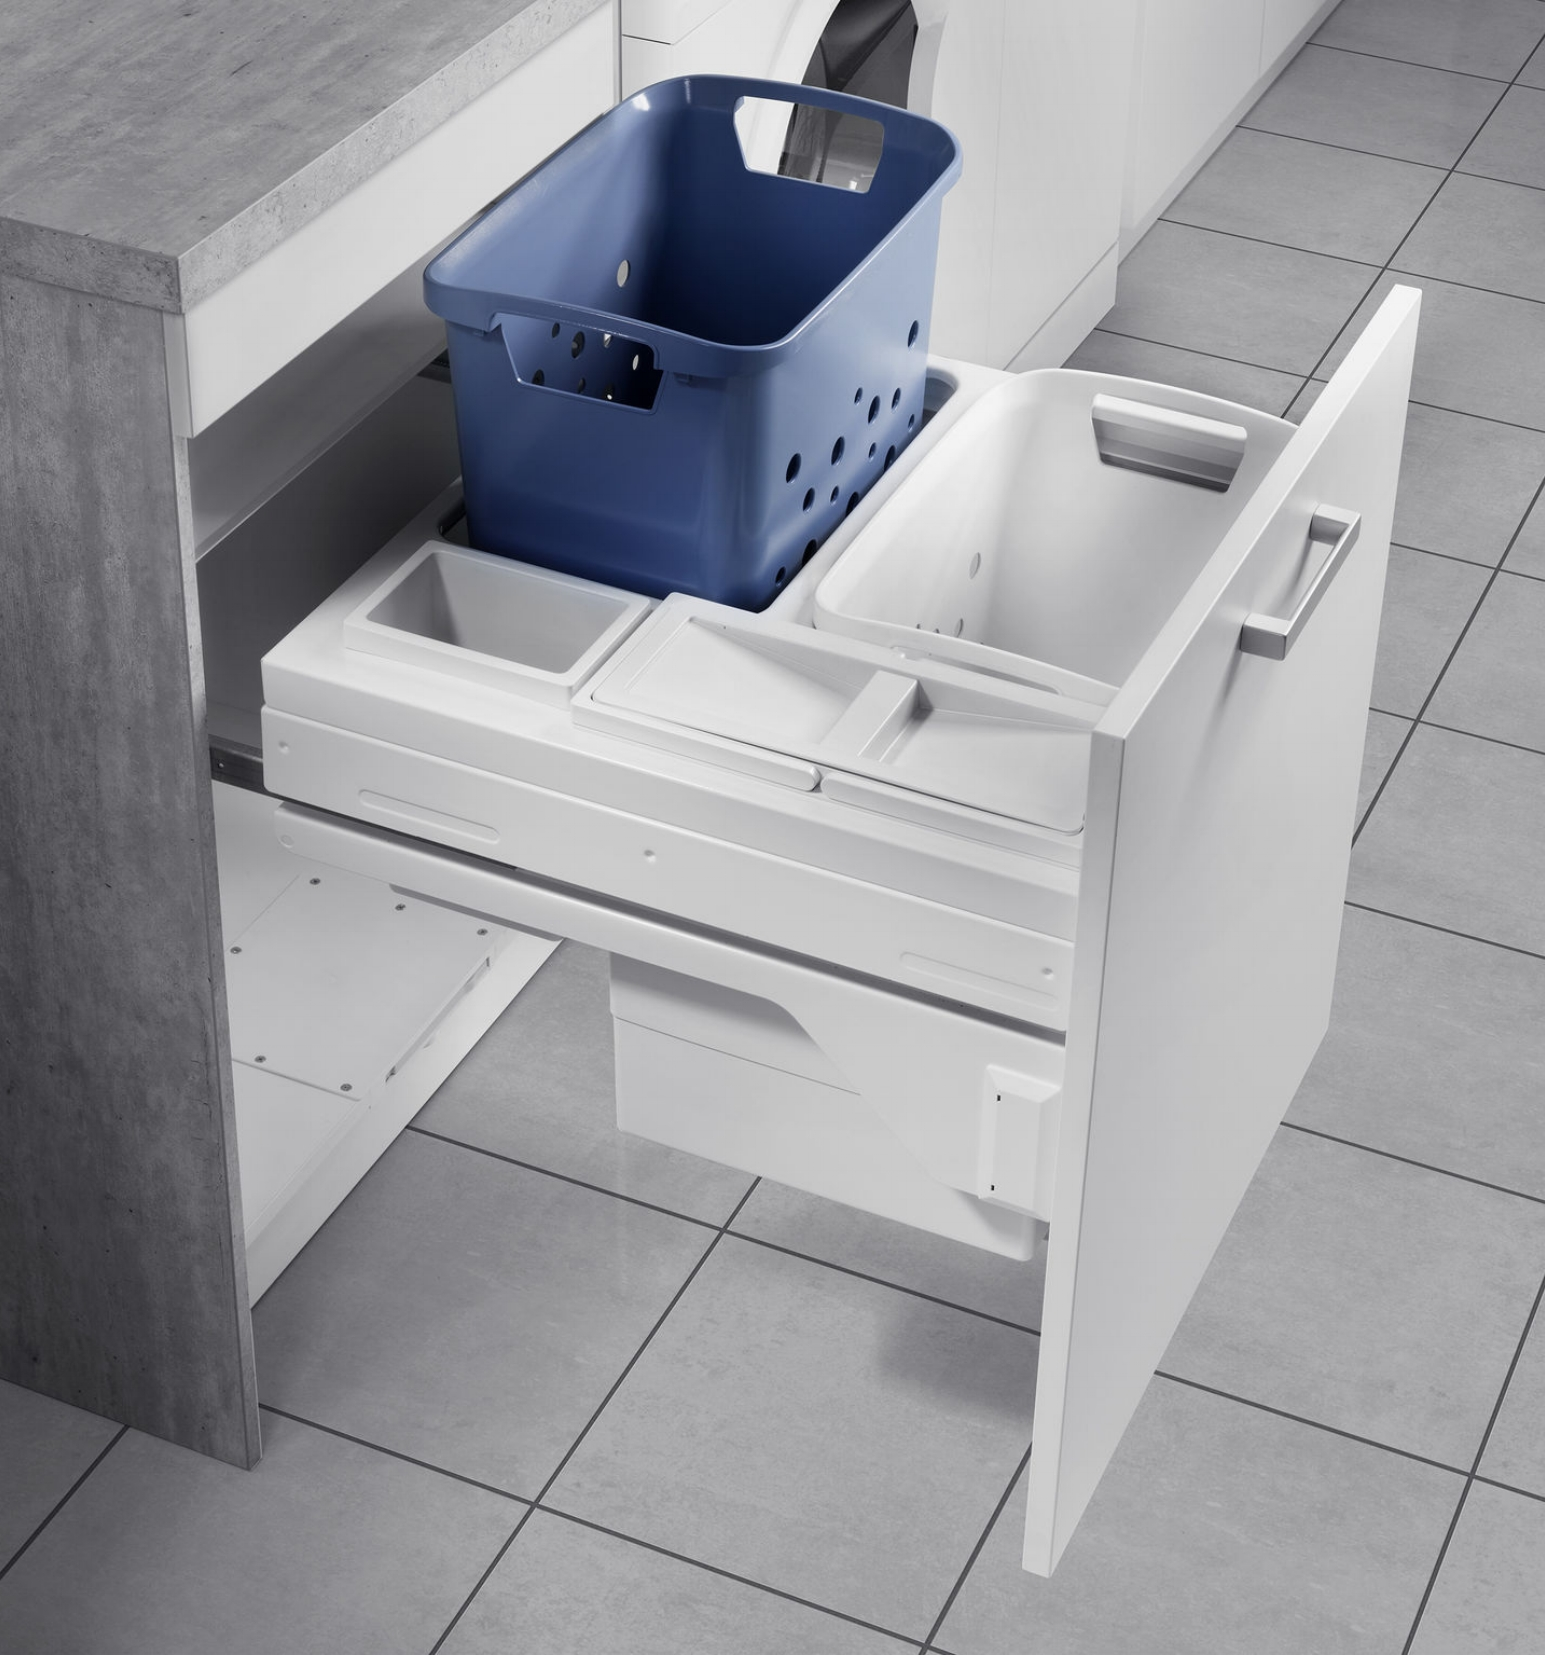 Laundry Carrier